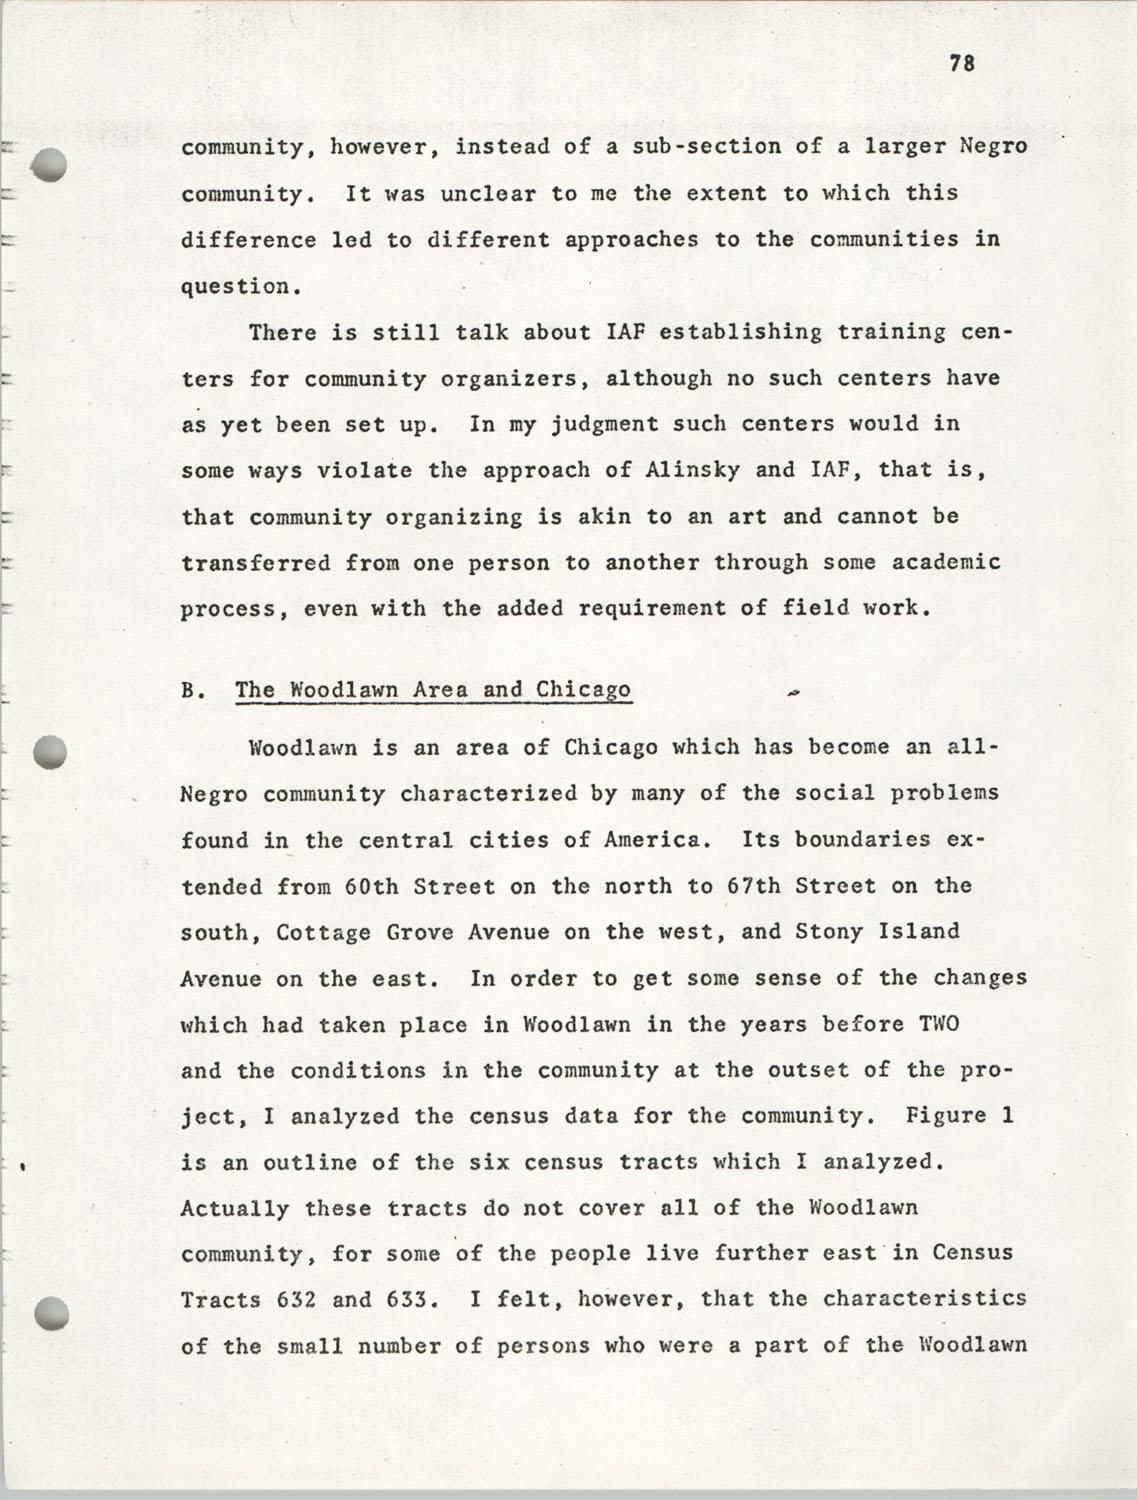 Citizen Participation. Democracy and Social Change, December 1, 1969, Page 78